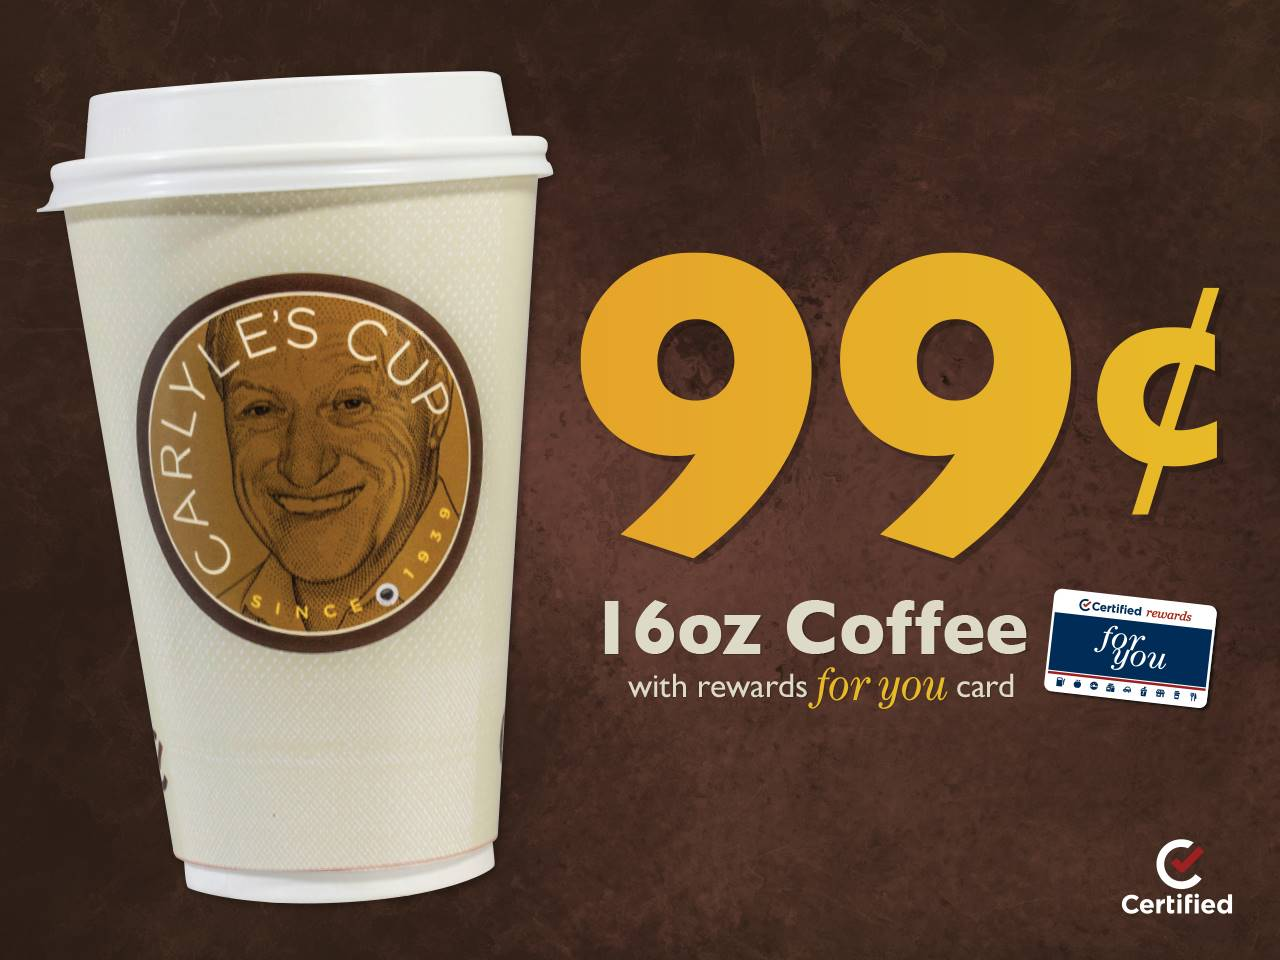 $.99 16oz Coffee with Registered Rewards for you Card